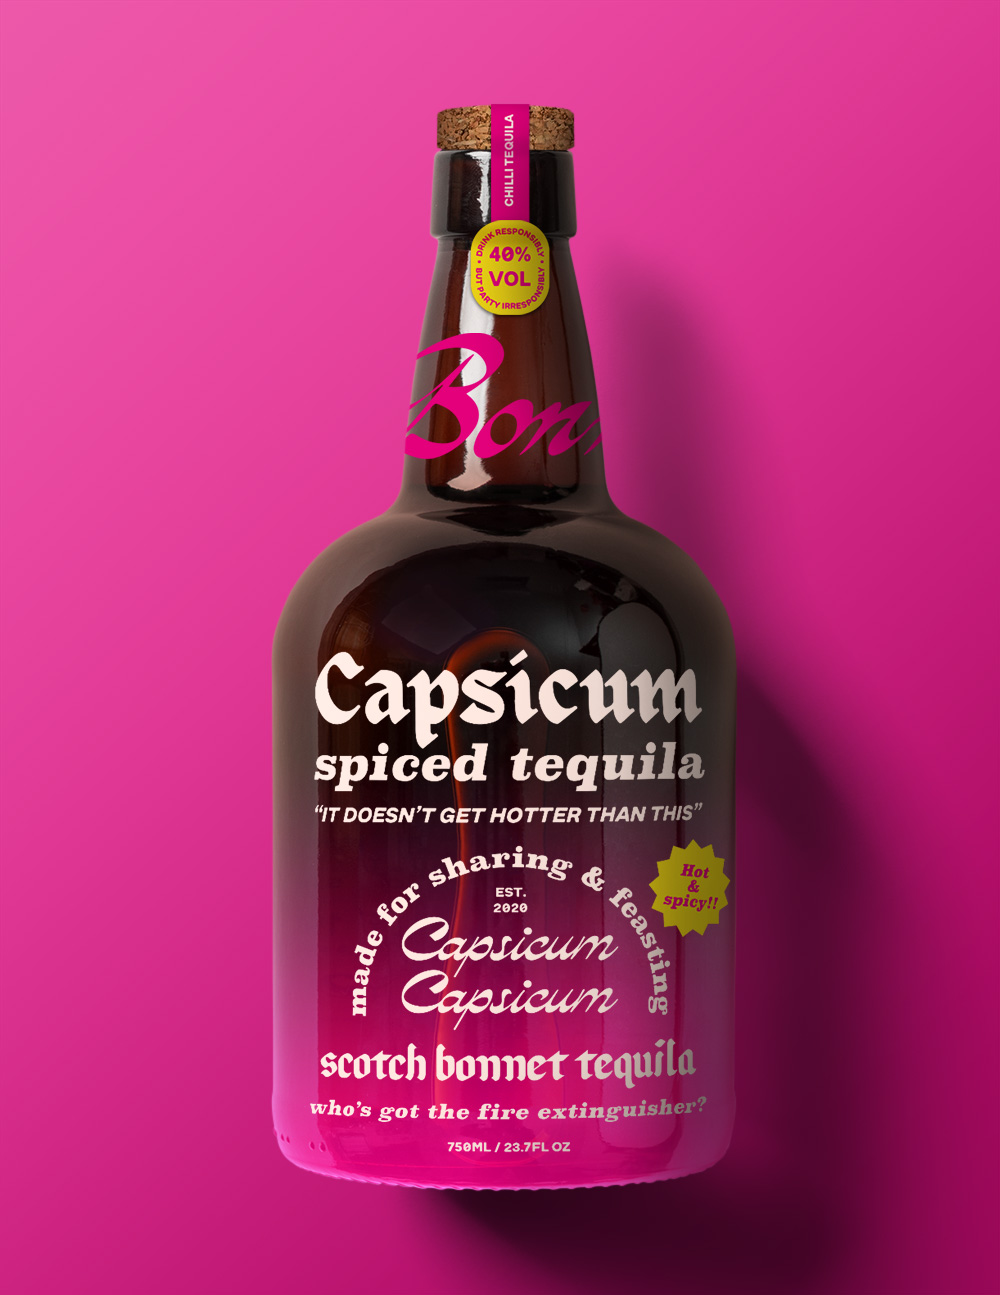 a pink tequila bottle which reads 'capsicium spiced tequila'